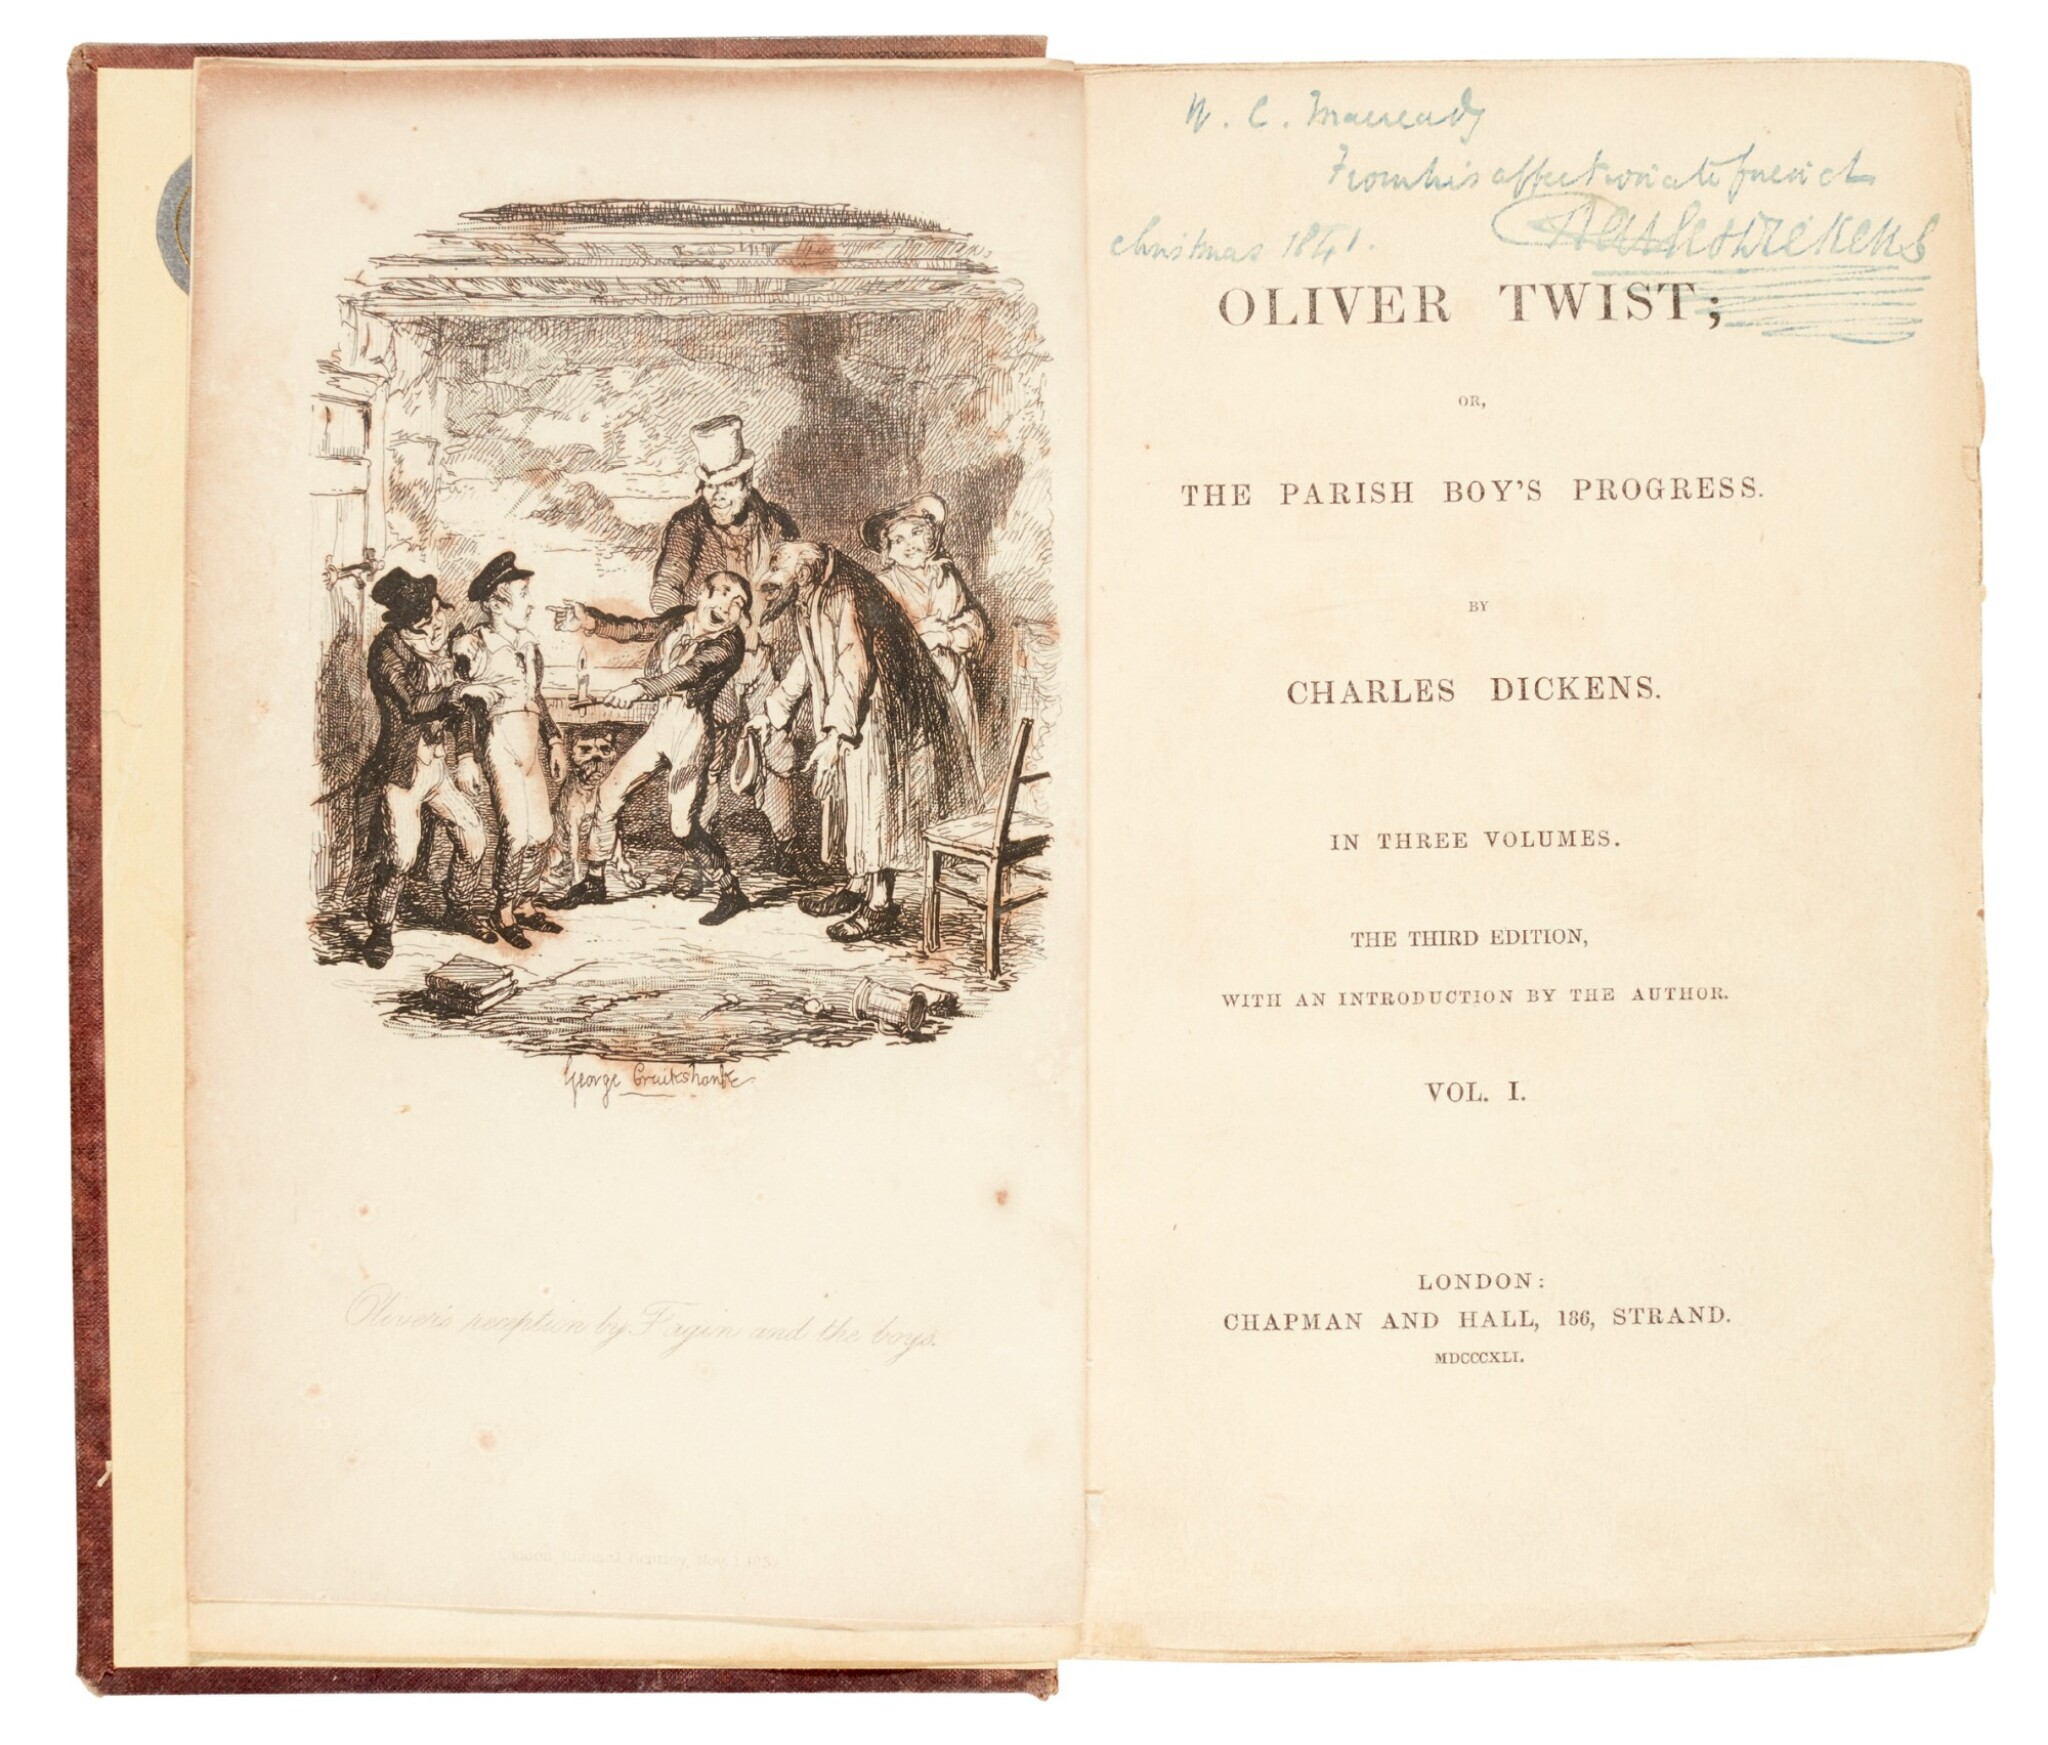 View full screen - View 1 of Lot 50. Dickens, Oliver Twist, 1841, third edition, presentation copy inscribed to Macready.